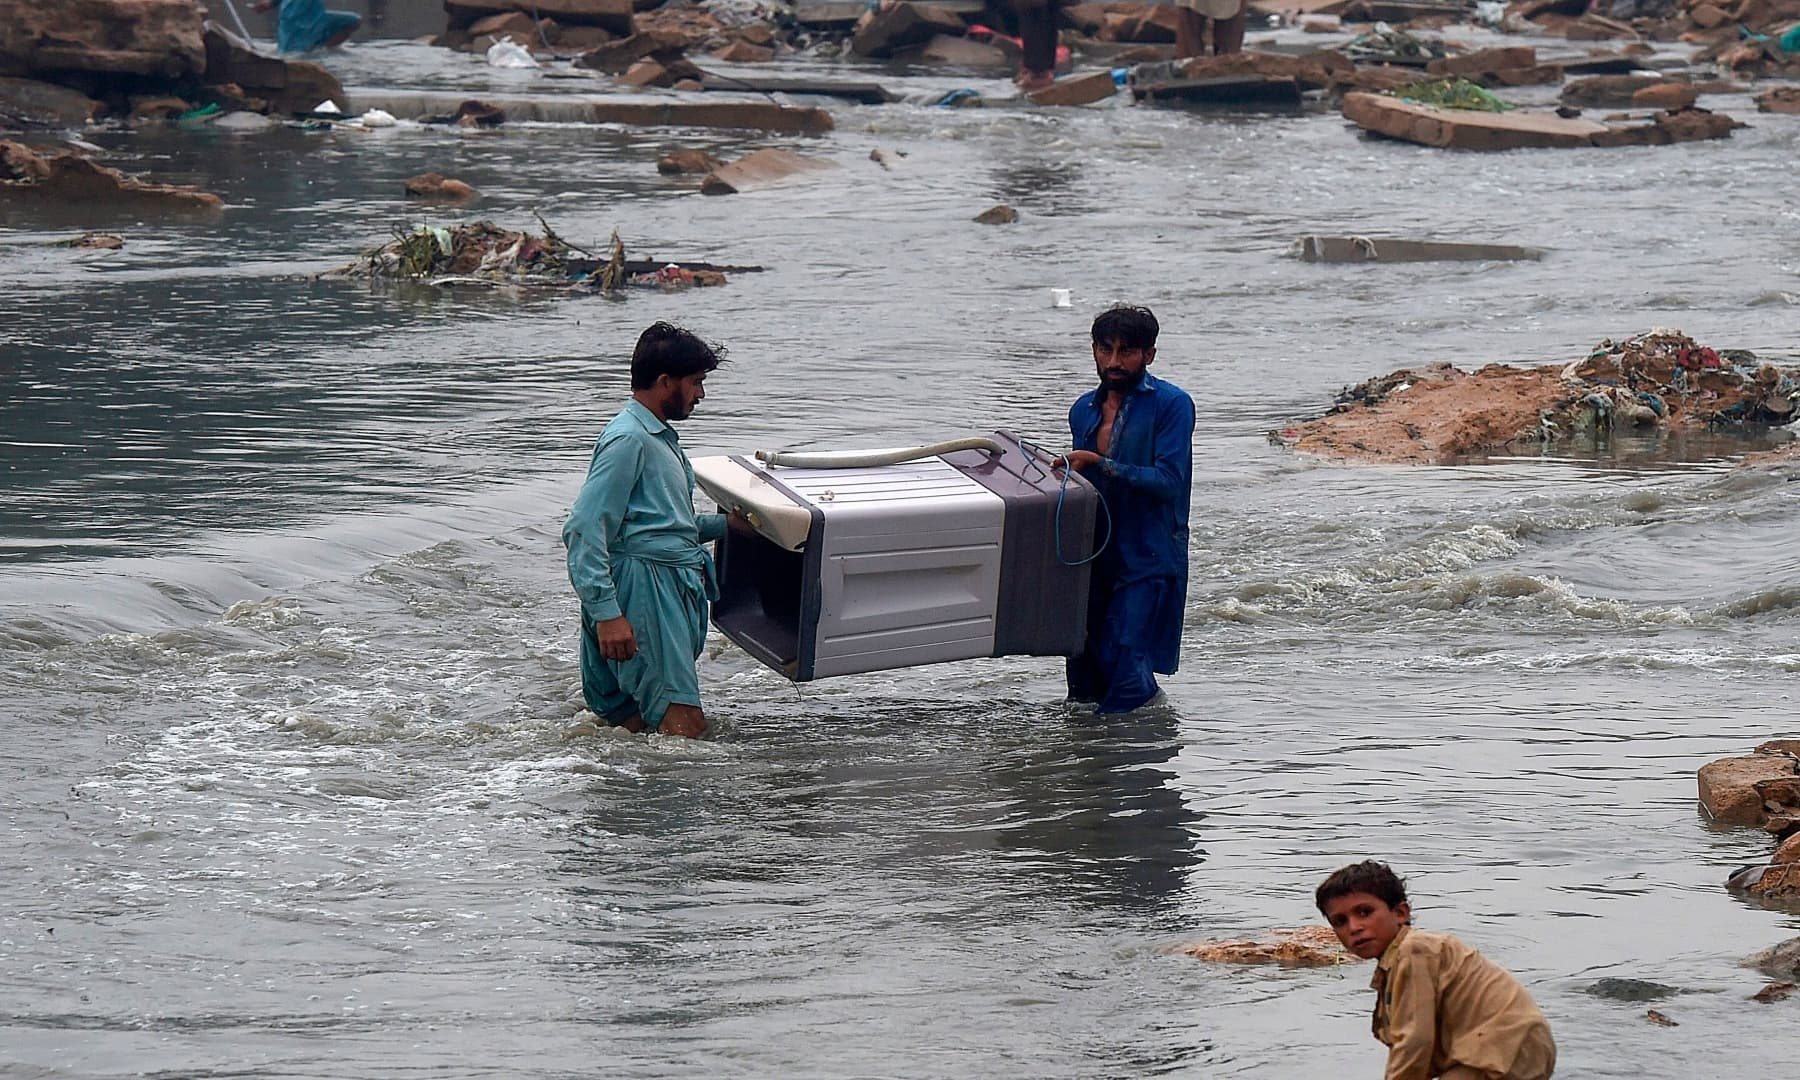 People carry a washing machine through a flooded residential area. — AFP